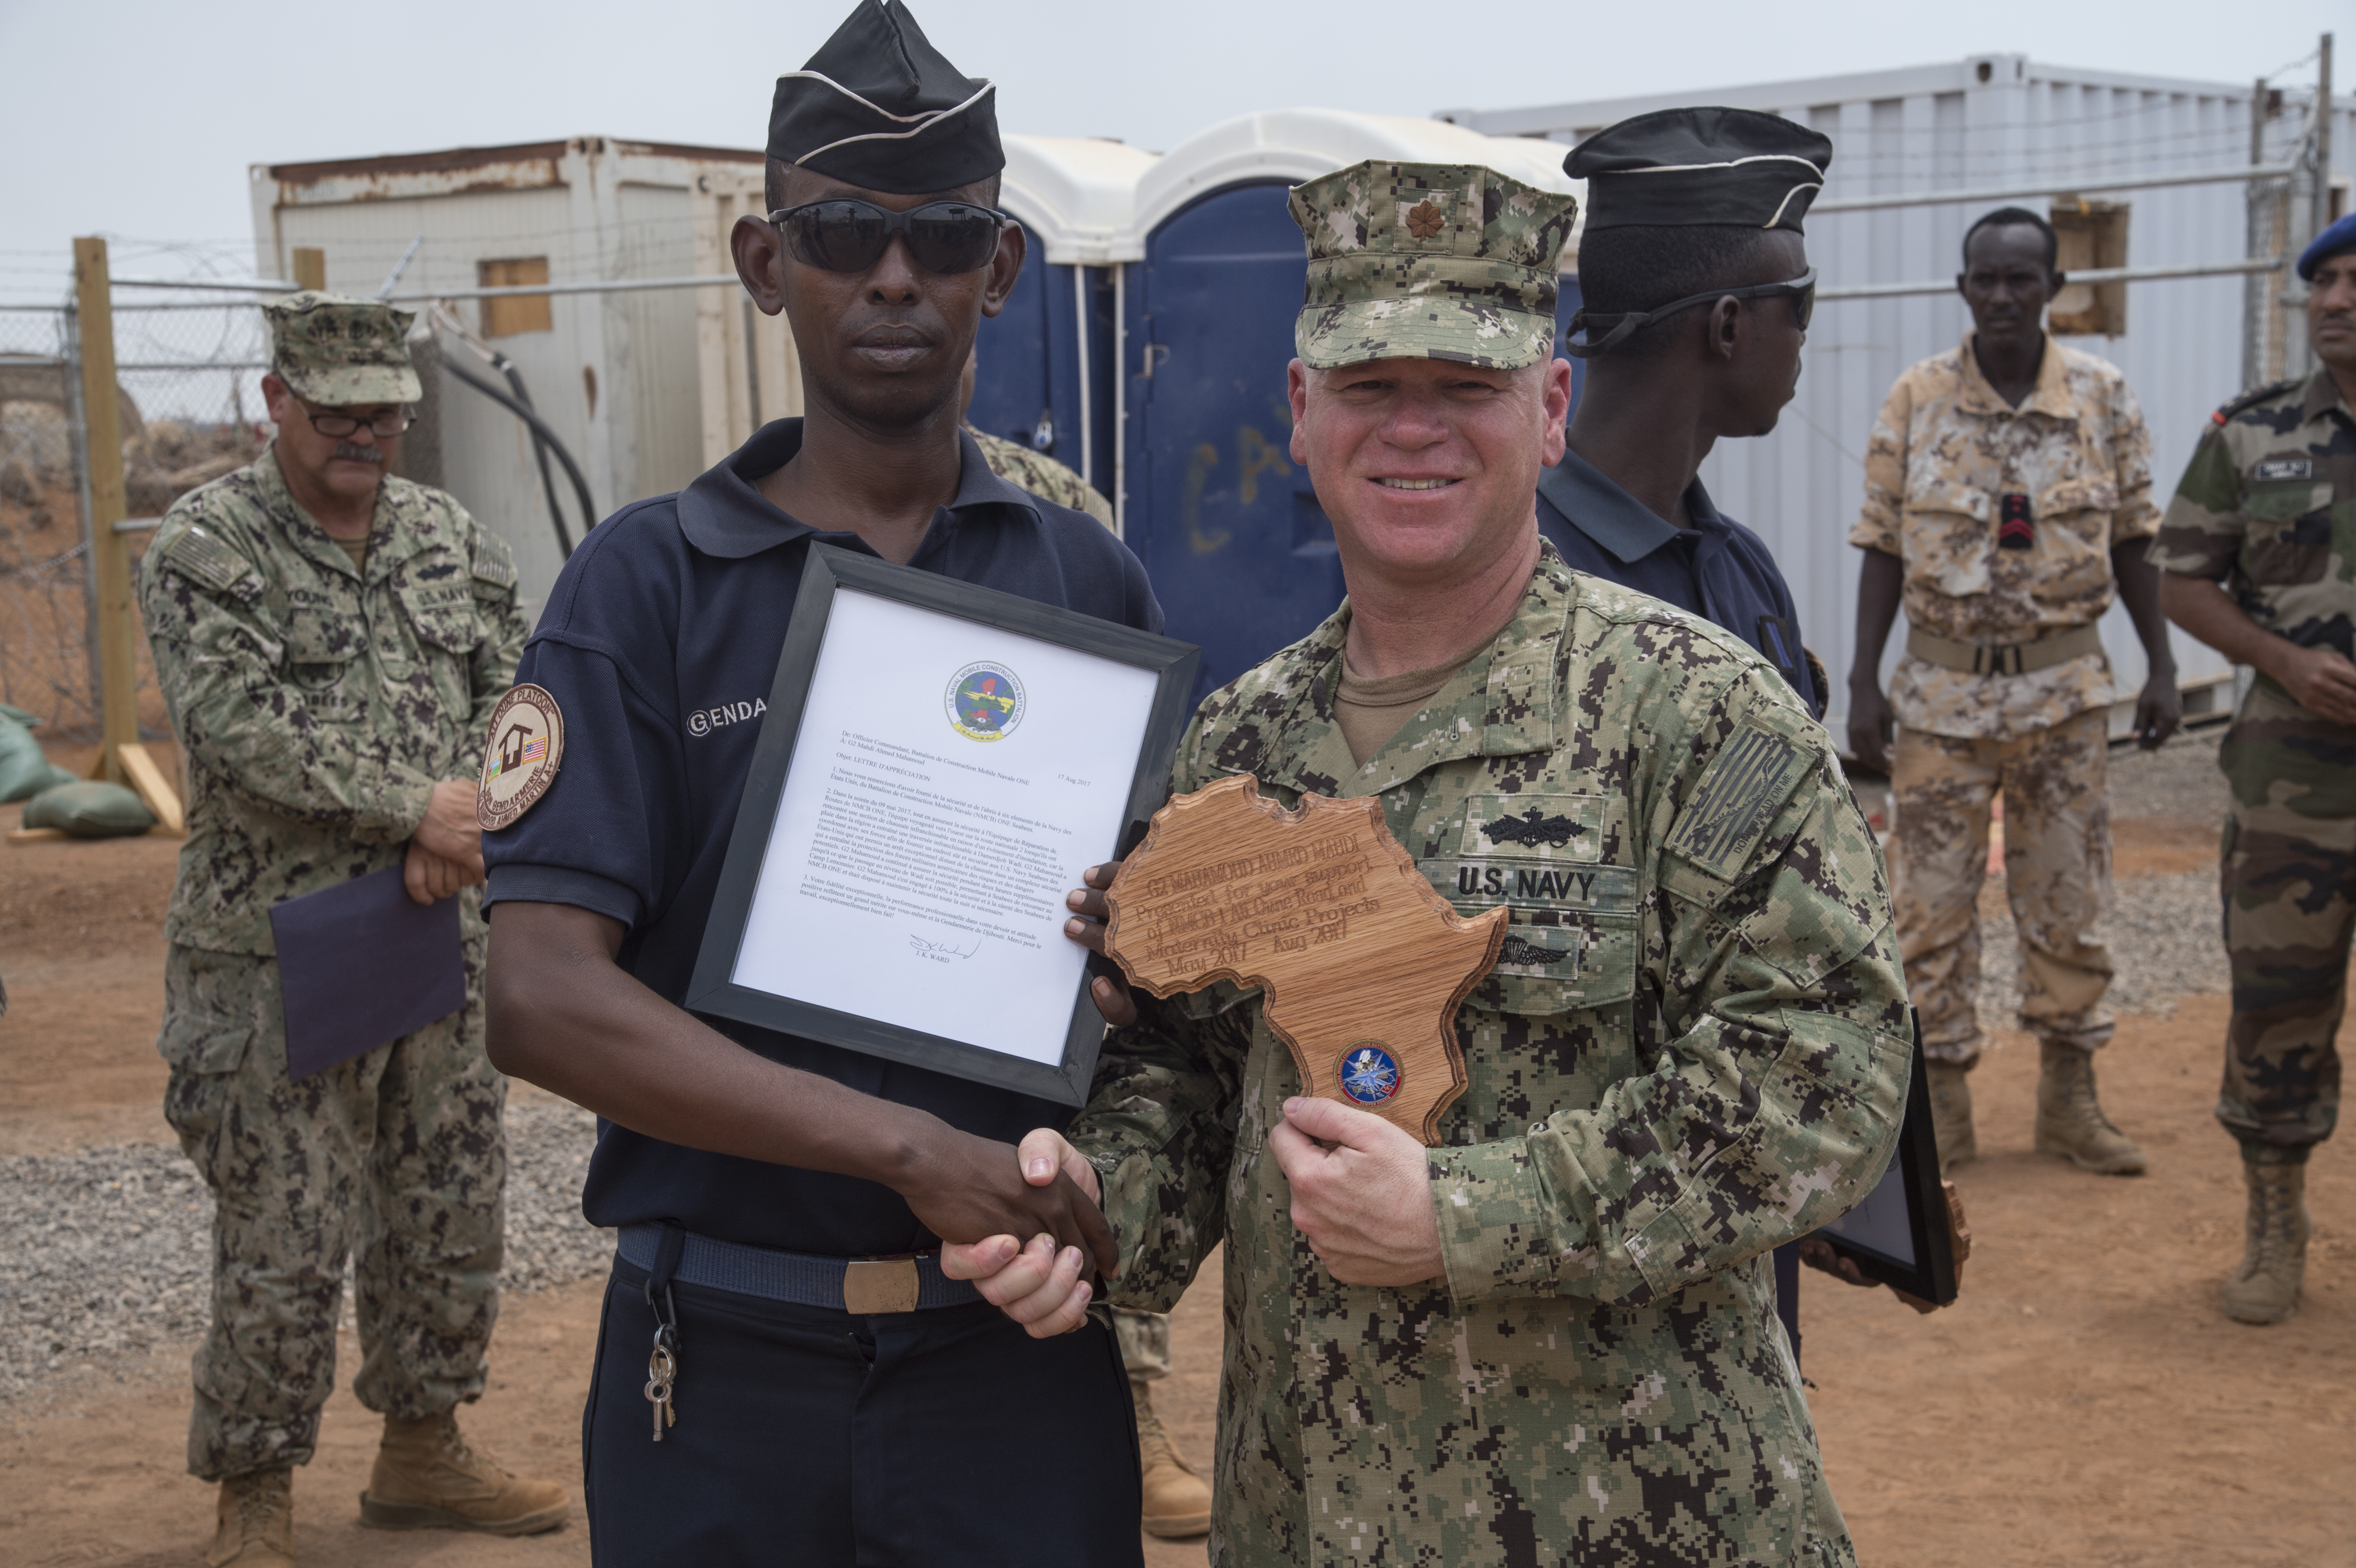 Naval Mobile Construction Battalion ONE officer-in-charge U.S. Navy Lt. Cmdr. Jason Ward recognizes Djiboutian Gendarmerie Mahamoud Ahmed Mahdi for providing additional security to the Seabees assigned to Combined Joint Task Force-Horn of Africa while they worked on a construction site at a remote village in the Arta region of Djibouti, Aug. 17, 2017. The project was started by NMCB 1, now replaced by NMCB 133, who will continue working on the project. (U.S. Air National Guard photo by Tech. Sgt. Joseph Harwood)